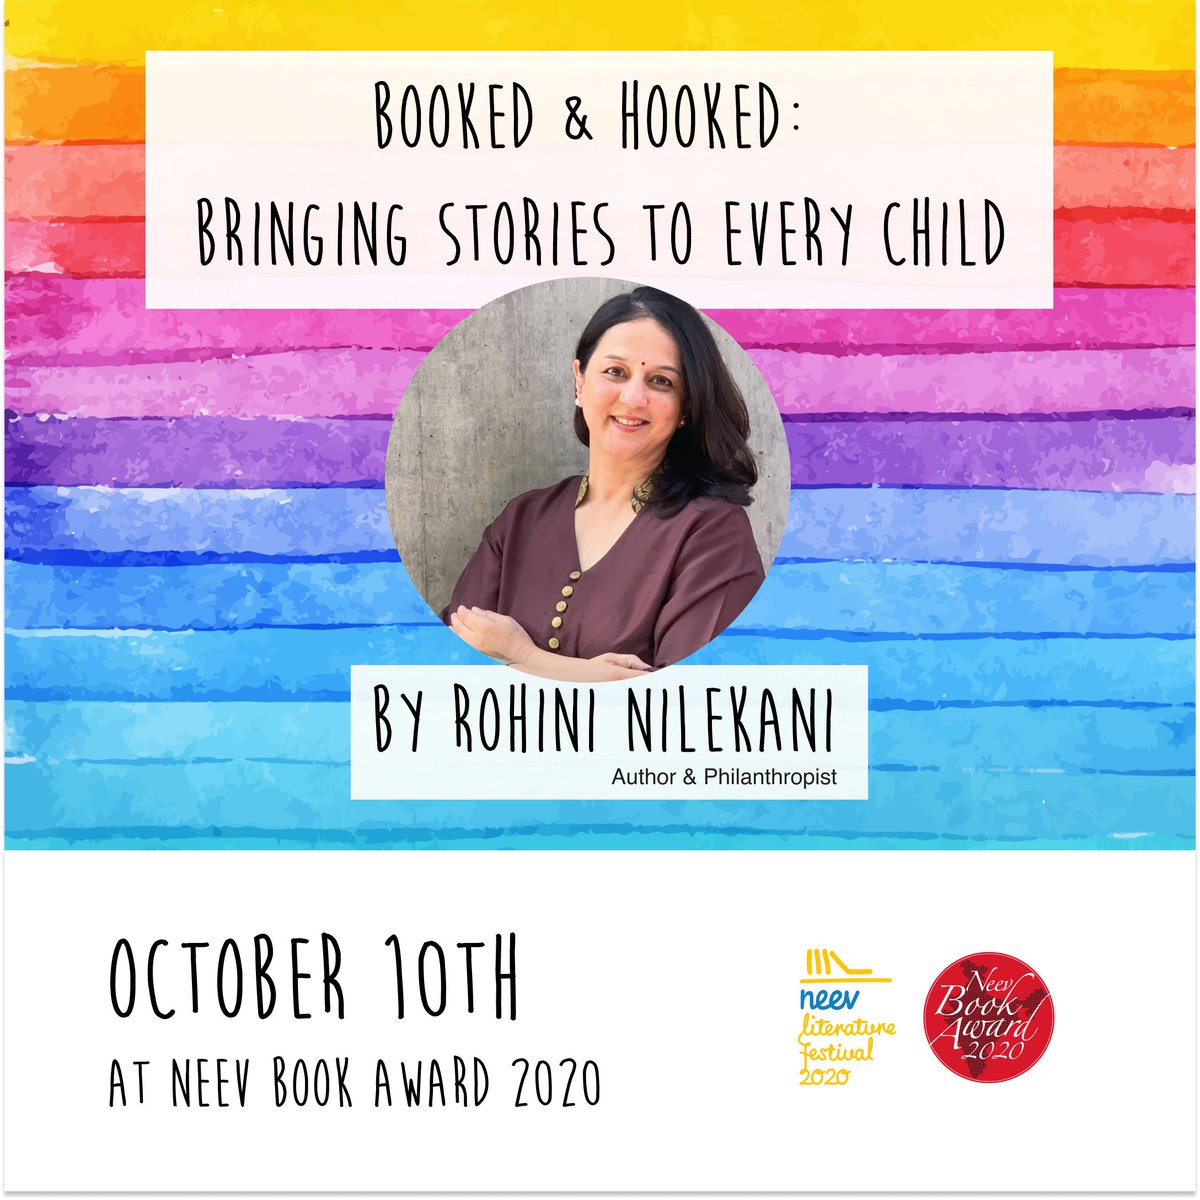 Join Rohini Nilekani, Author & Philanthropist in the keynote address — Booked and Hooked: Bringing Stories to Every Child on October 10 at 10.00 am IST (GMT +5.5)  Register here https://t.co/HVnz09qKks   #NLFOnline #NLF2020 https://t.co/GduCjAmX0U